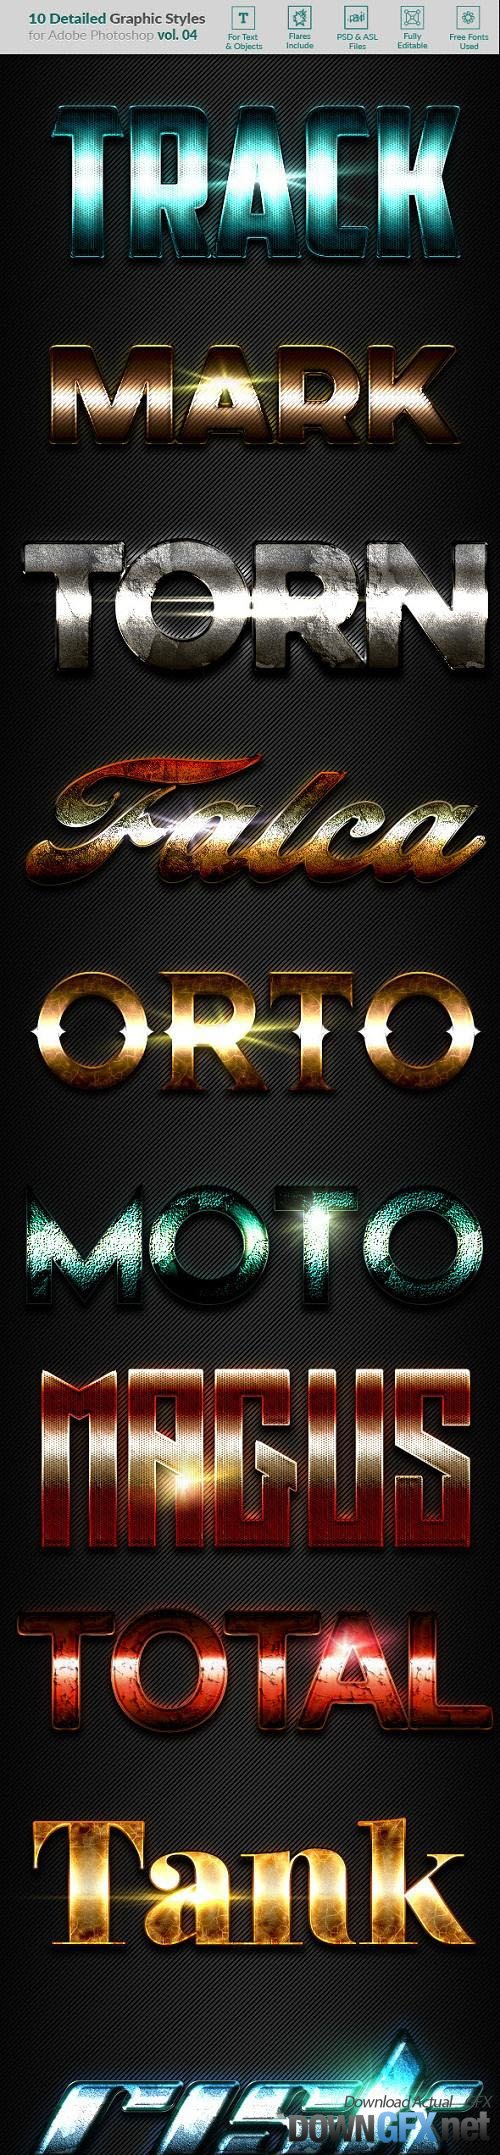 10 Text Effects Vol. 04 19872371